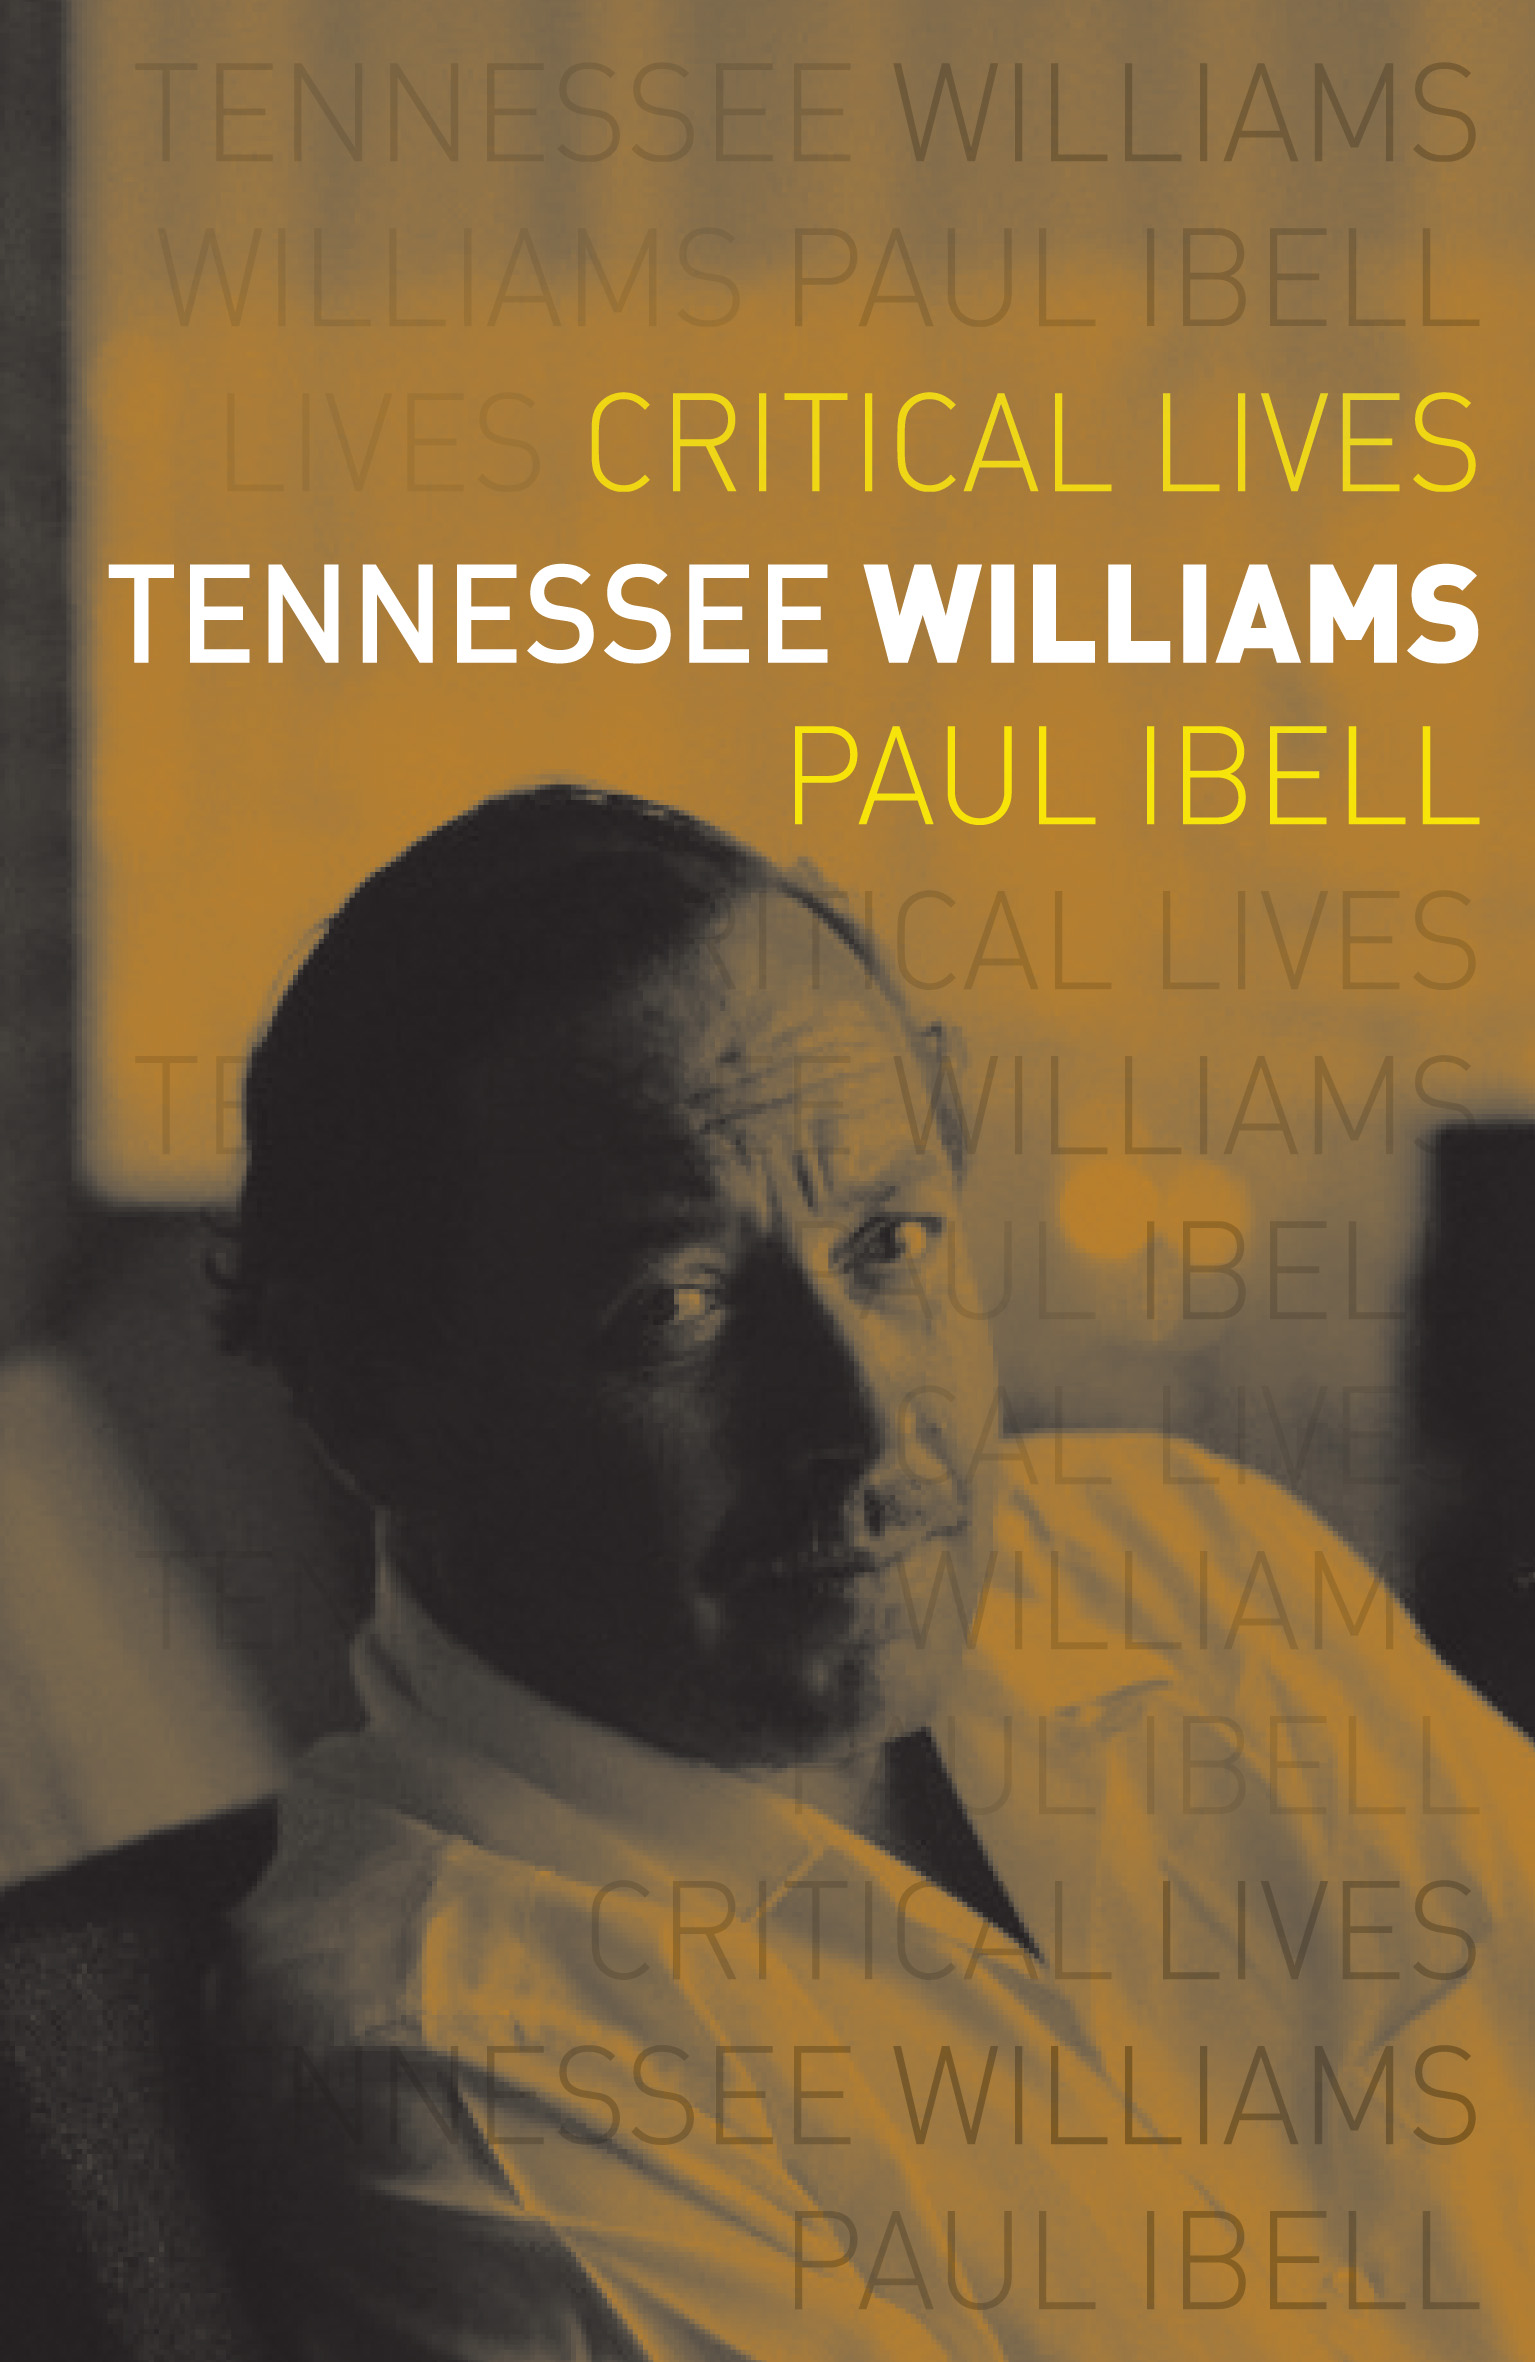 critical essay on tennessee williams For on the evening of that day, tennessee williams's innovative drama, tlze glass menagerie, opened to critical acclaim both critics and members of the widening.